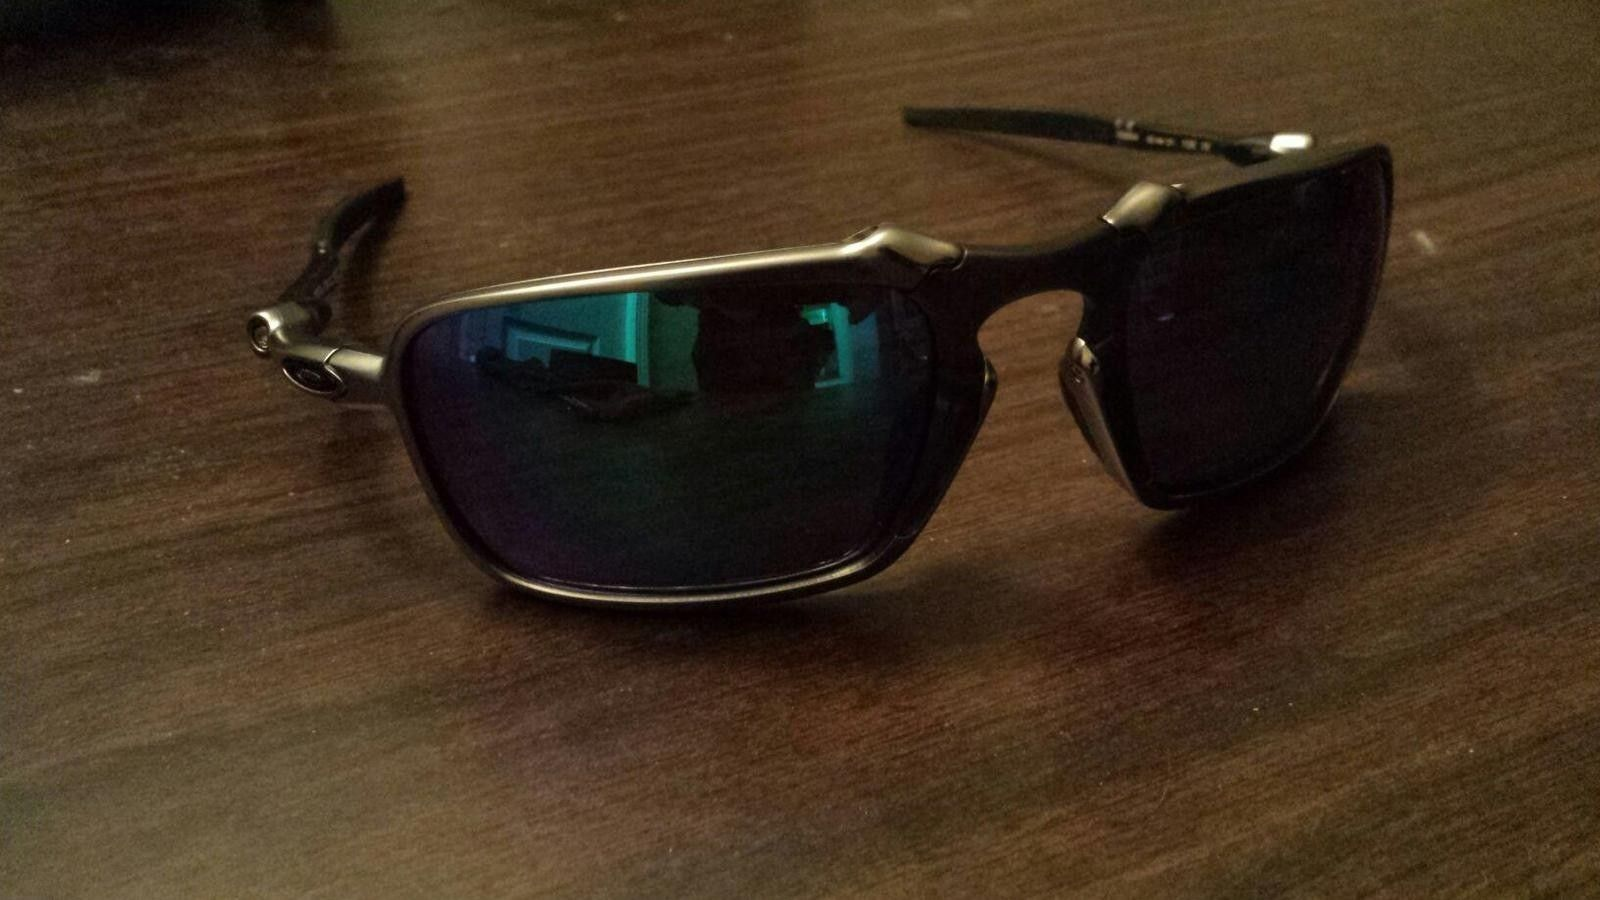 Mint condition Badman Sapphire polarized $350 - uploadfromtaptalk1425868578073.jpg